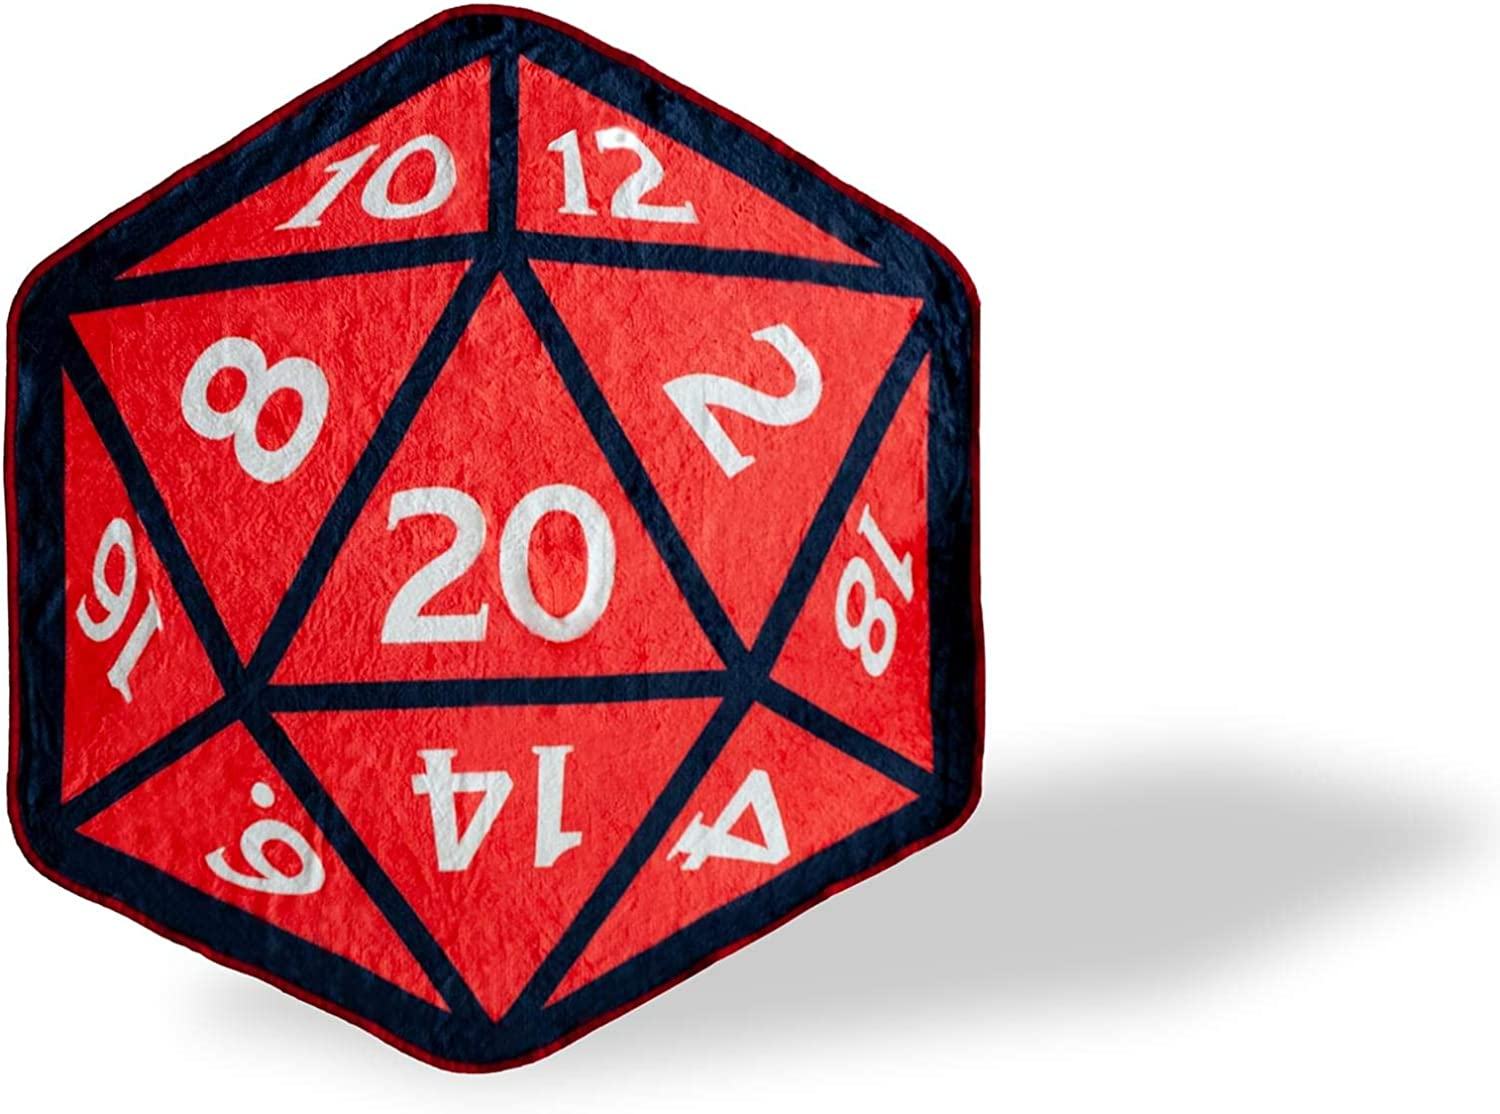 Dungeons And Dragons D20 Fleece Throw Blanket | Soft Blankets And Throws Fleece Blankets For Gamers | Designed After The D&D 20-Sided Dice | Measures 52 x 48 Inches